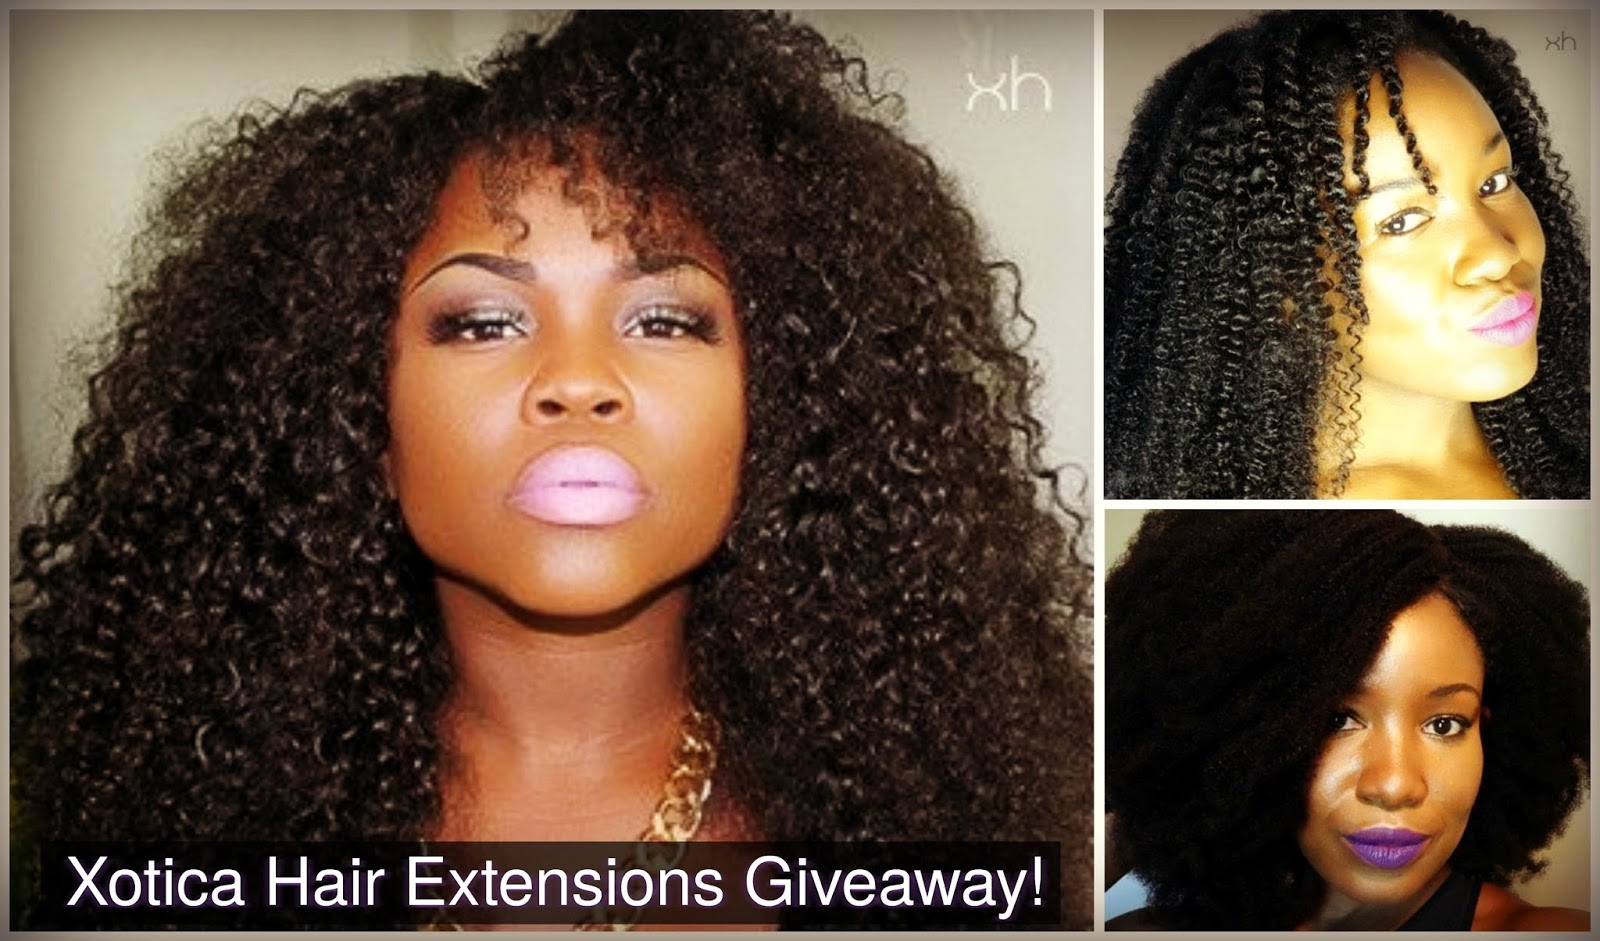 Xotica Hair Extensions